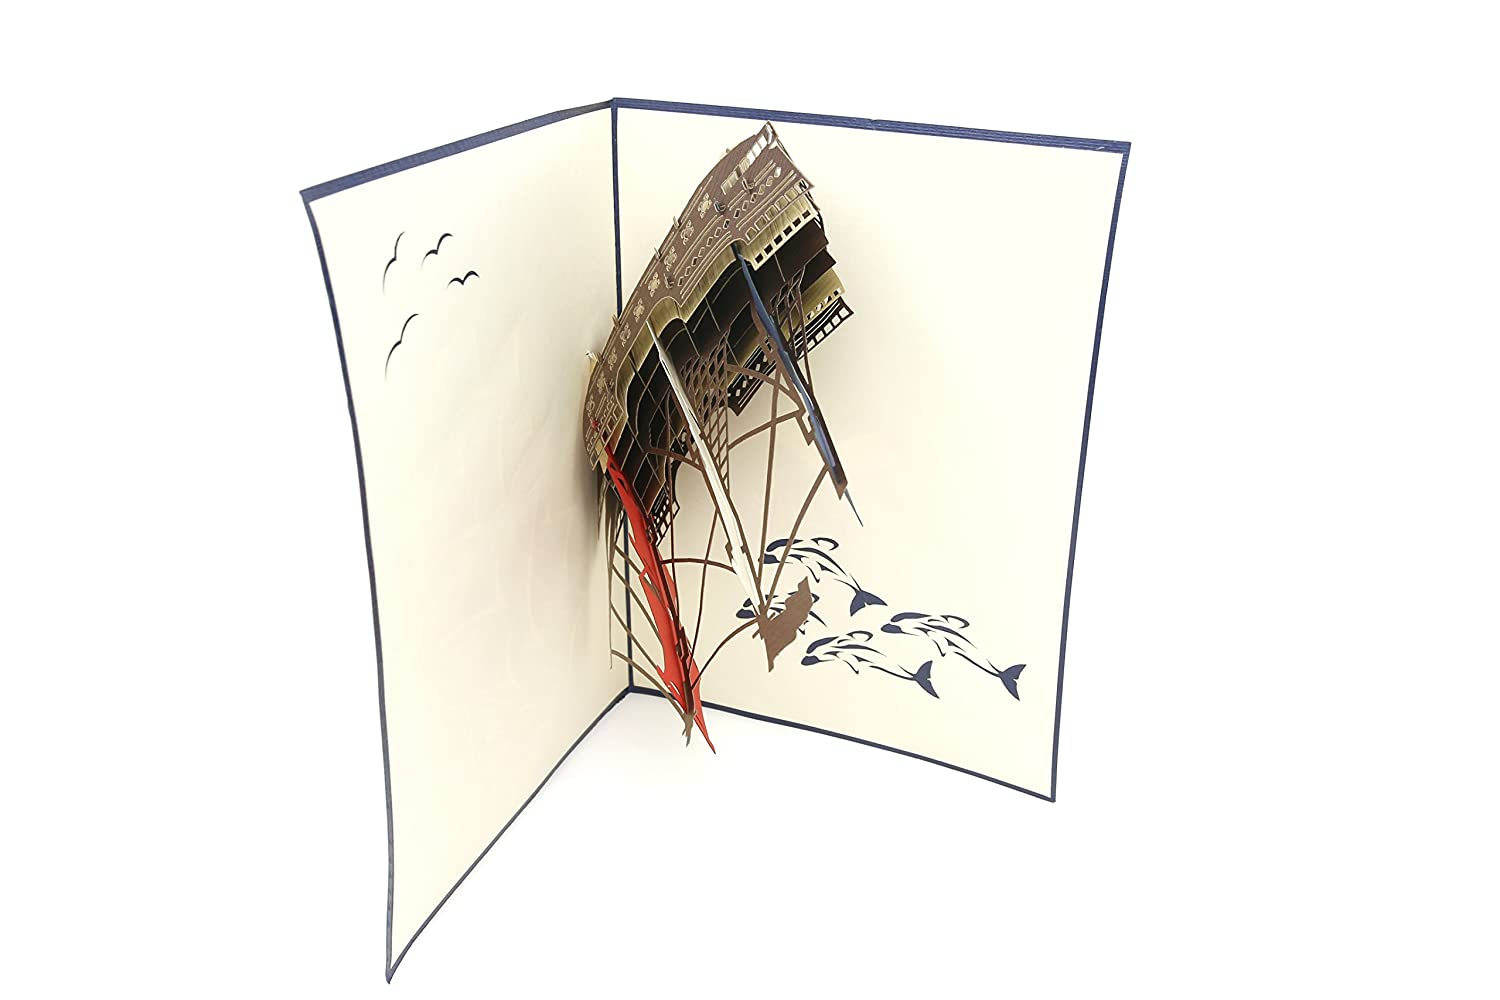 Anniversary Gift Graduation Birthday Boaters Pirates Retirement Folds Flat for Mailing Ocean Lovers PopLife Man O War Ship 3D Pop Up Greeting Card for All Occasions